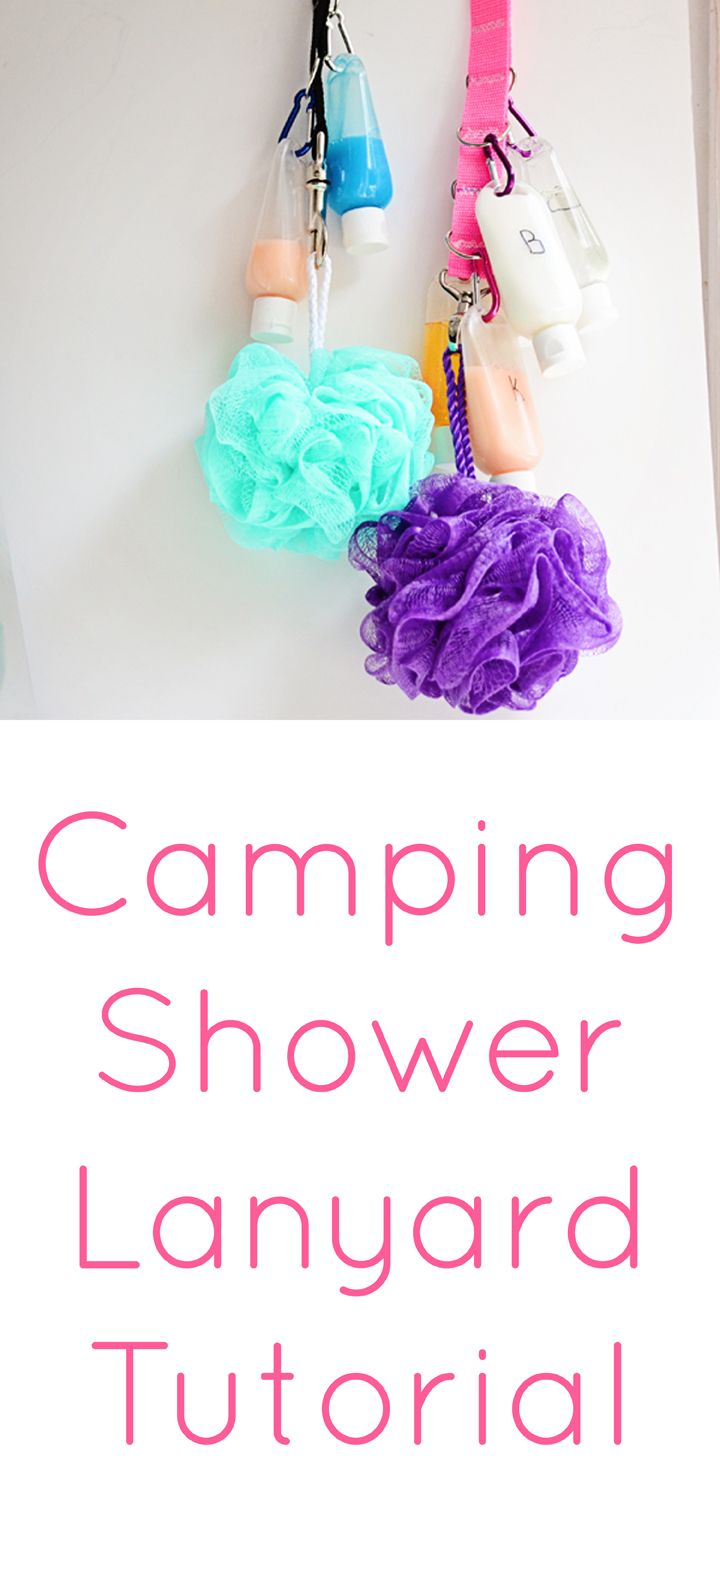 Shower Toiletries Lanyard- perfect for camping!